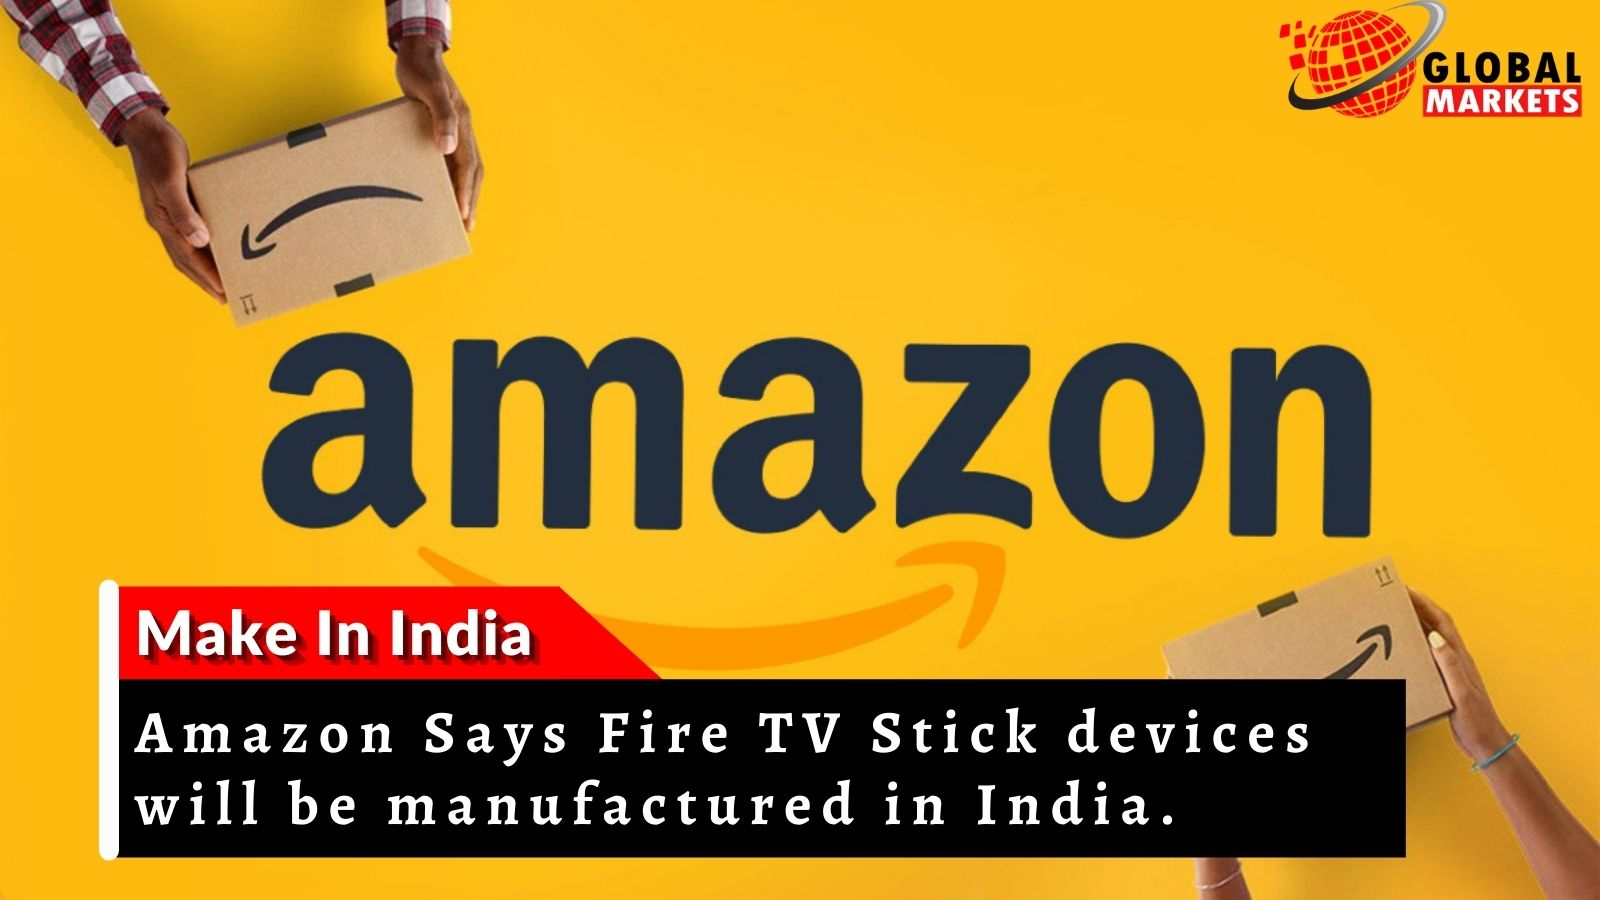 Amazon Says Fire TV Stick devices will be manufactured in India.